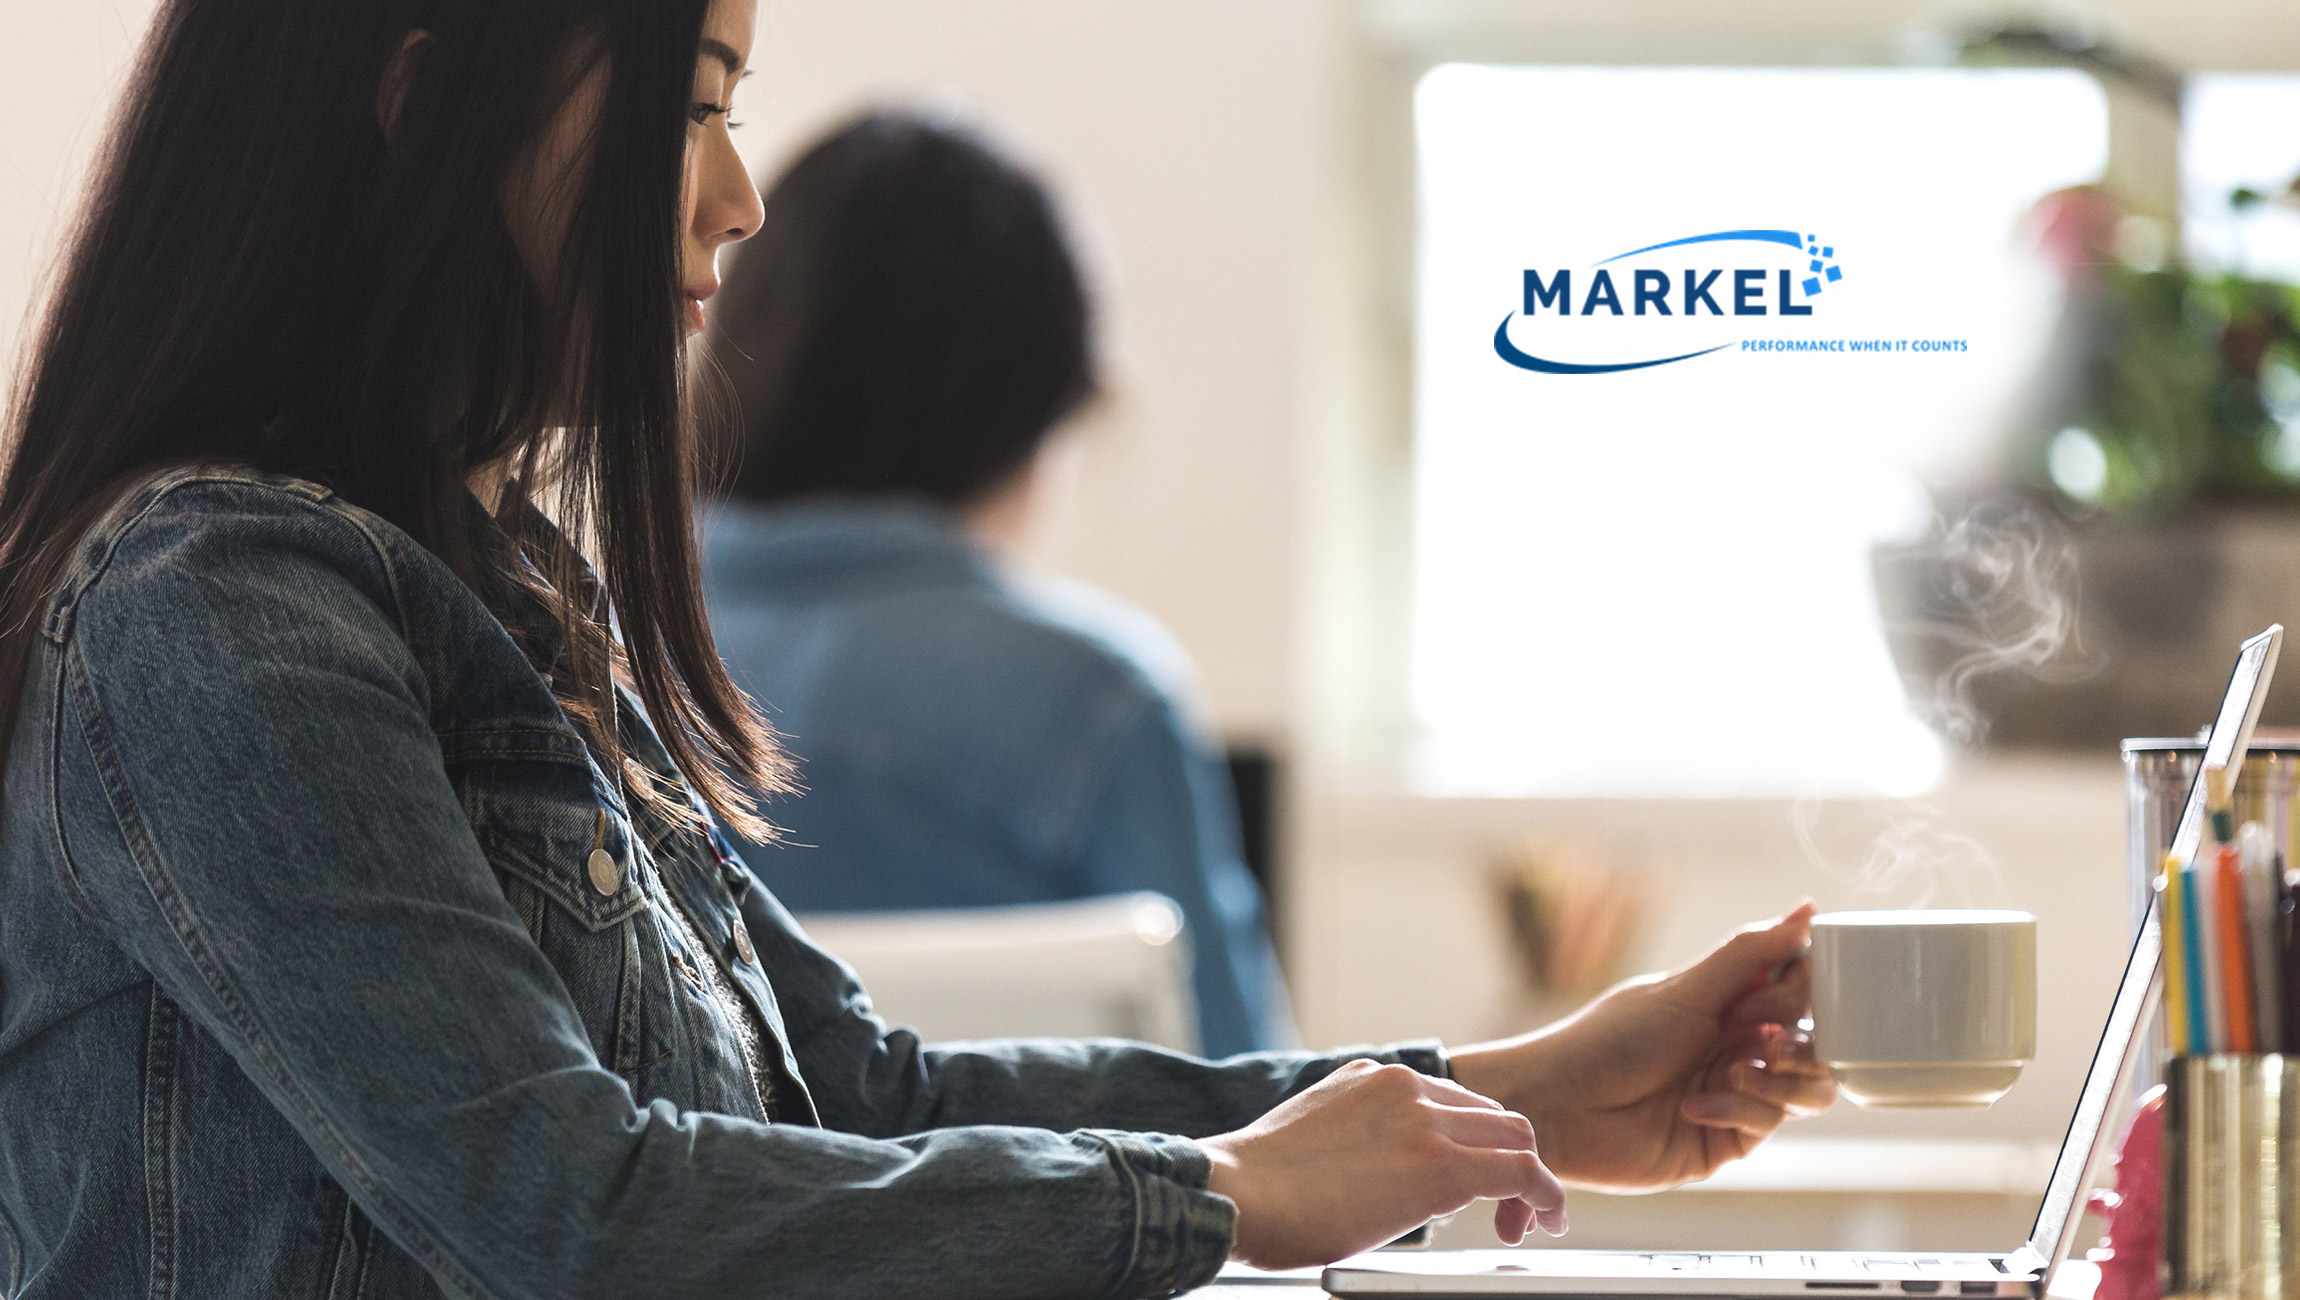 Markel Corporation Appoints New Vice President of Sales and Business Development